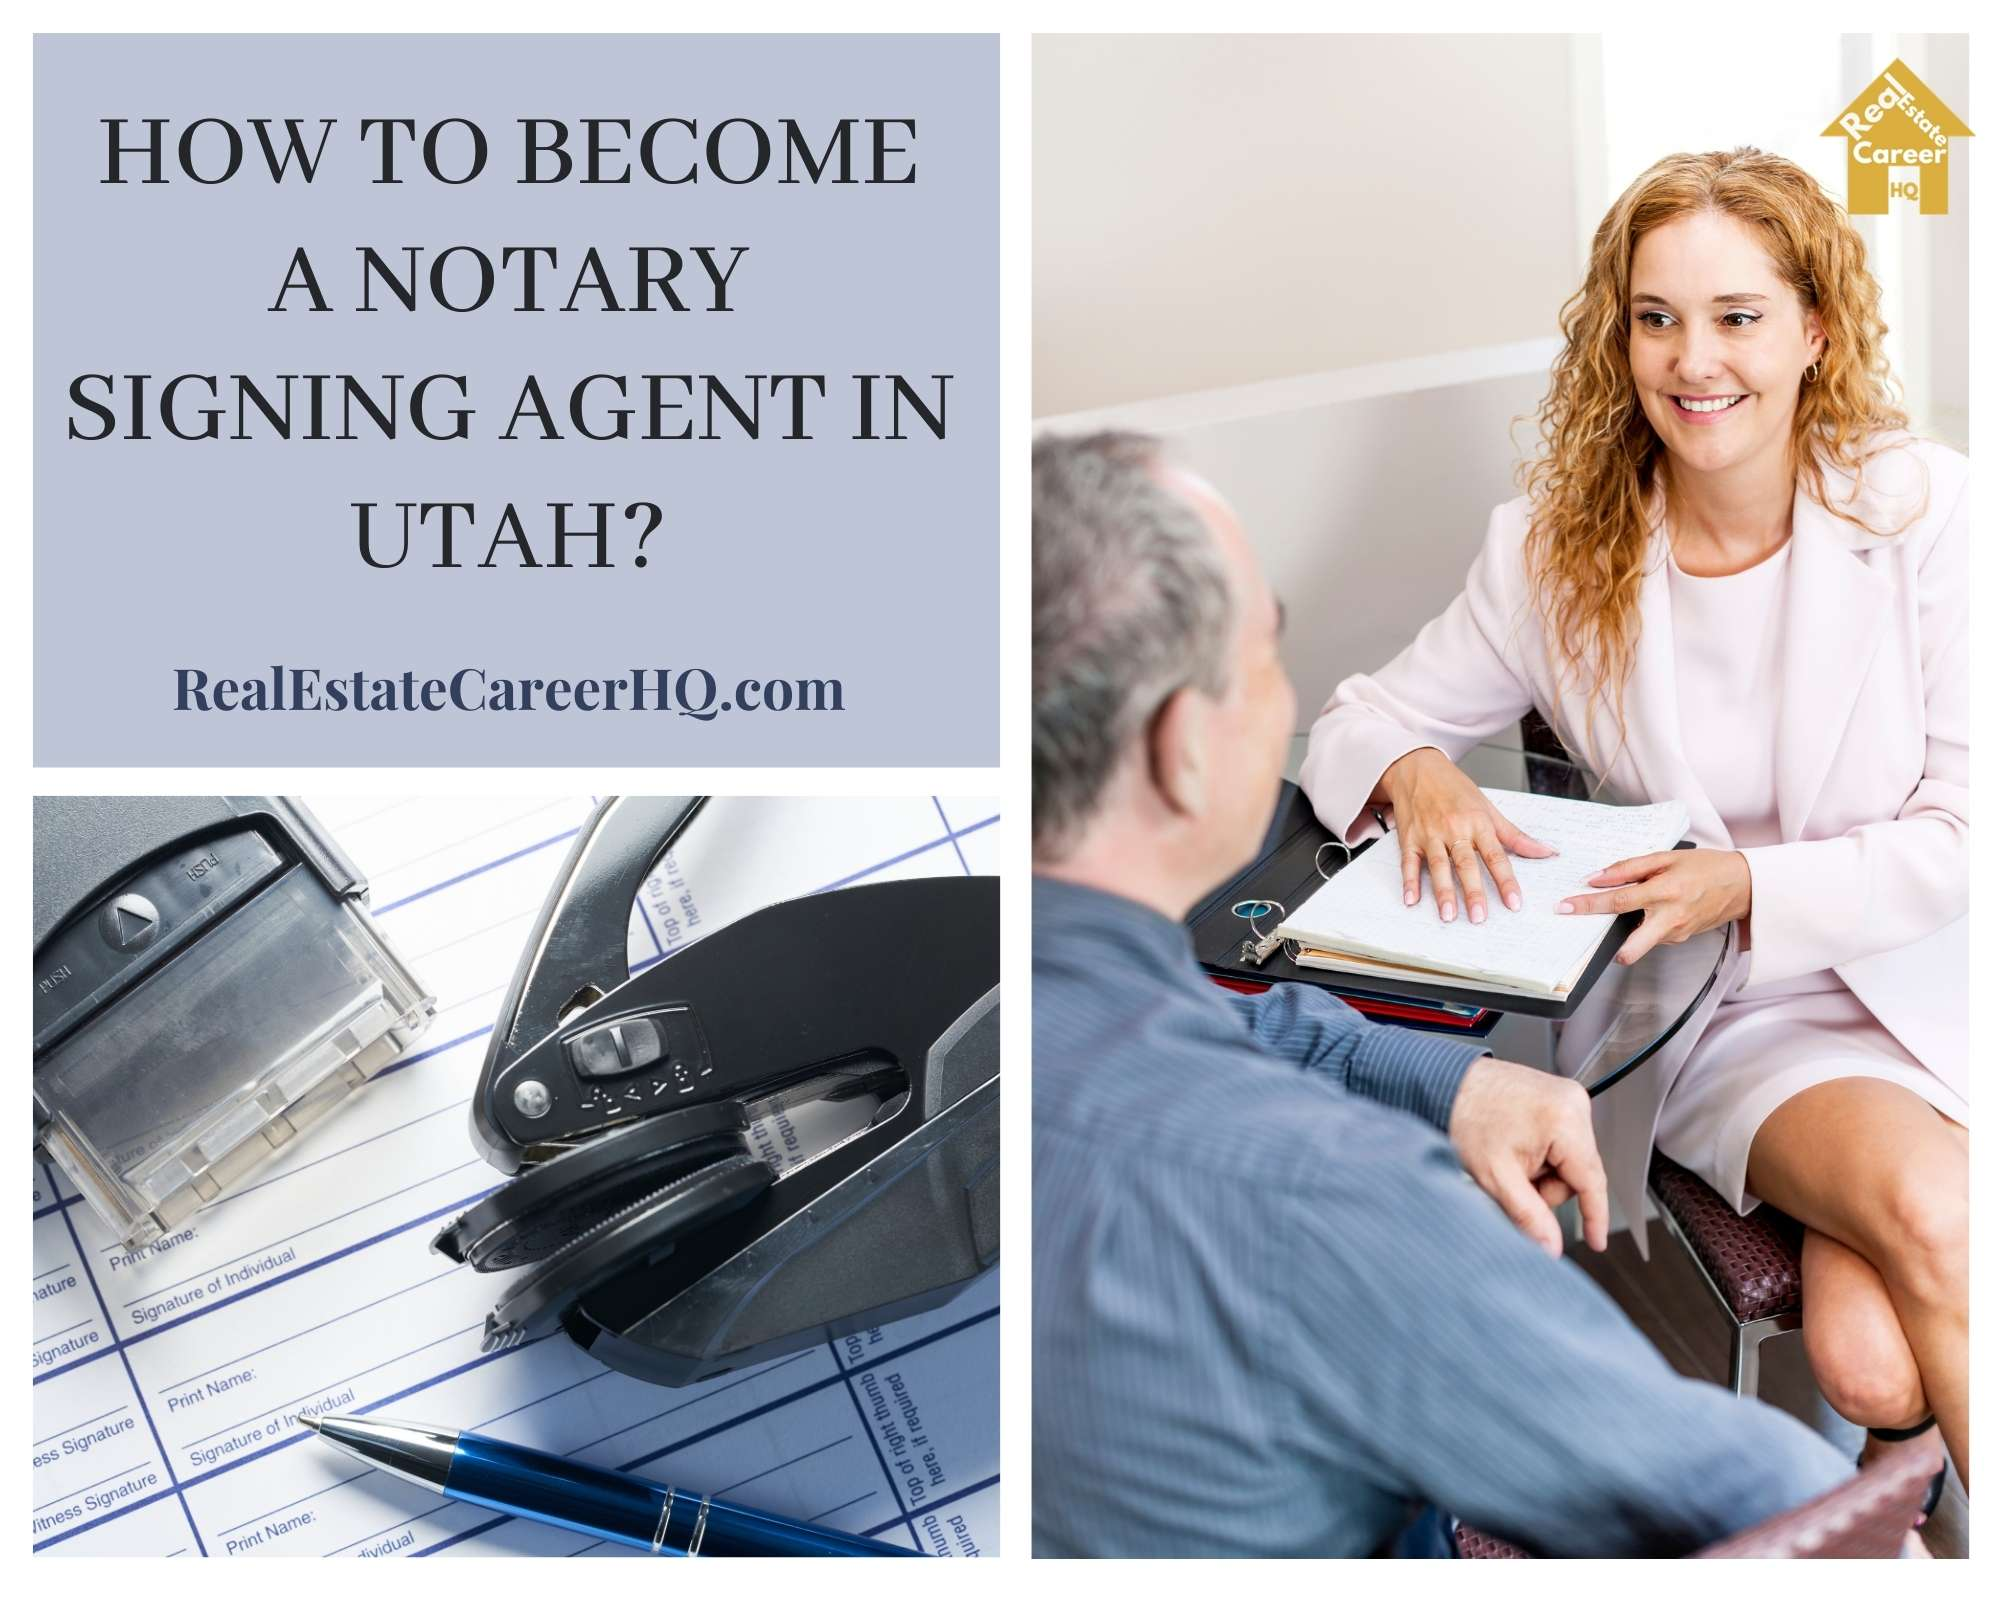 How to Become a Notary Signing Agent in Utah